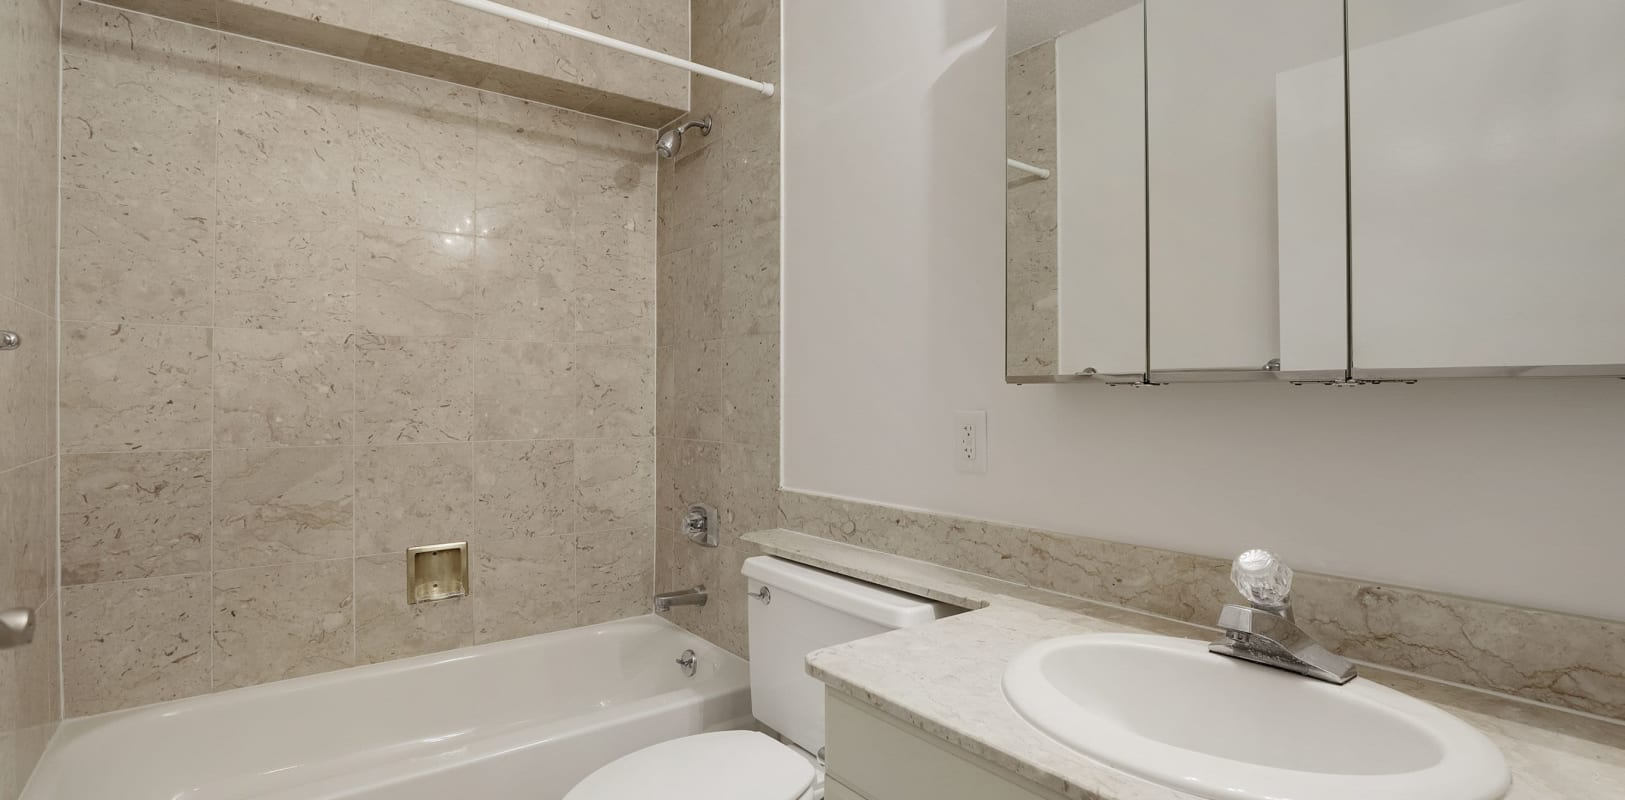 Bathroom at 140 Prospect in Hackensack, New Jersey